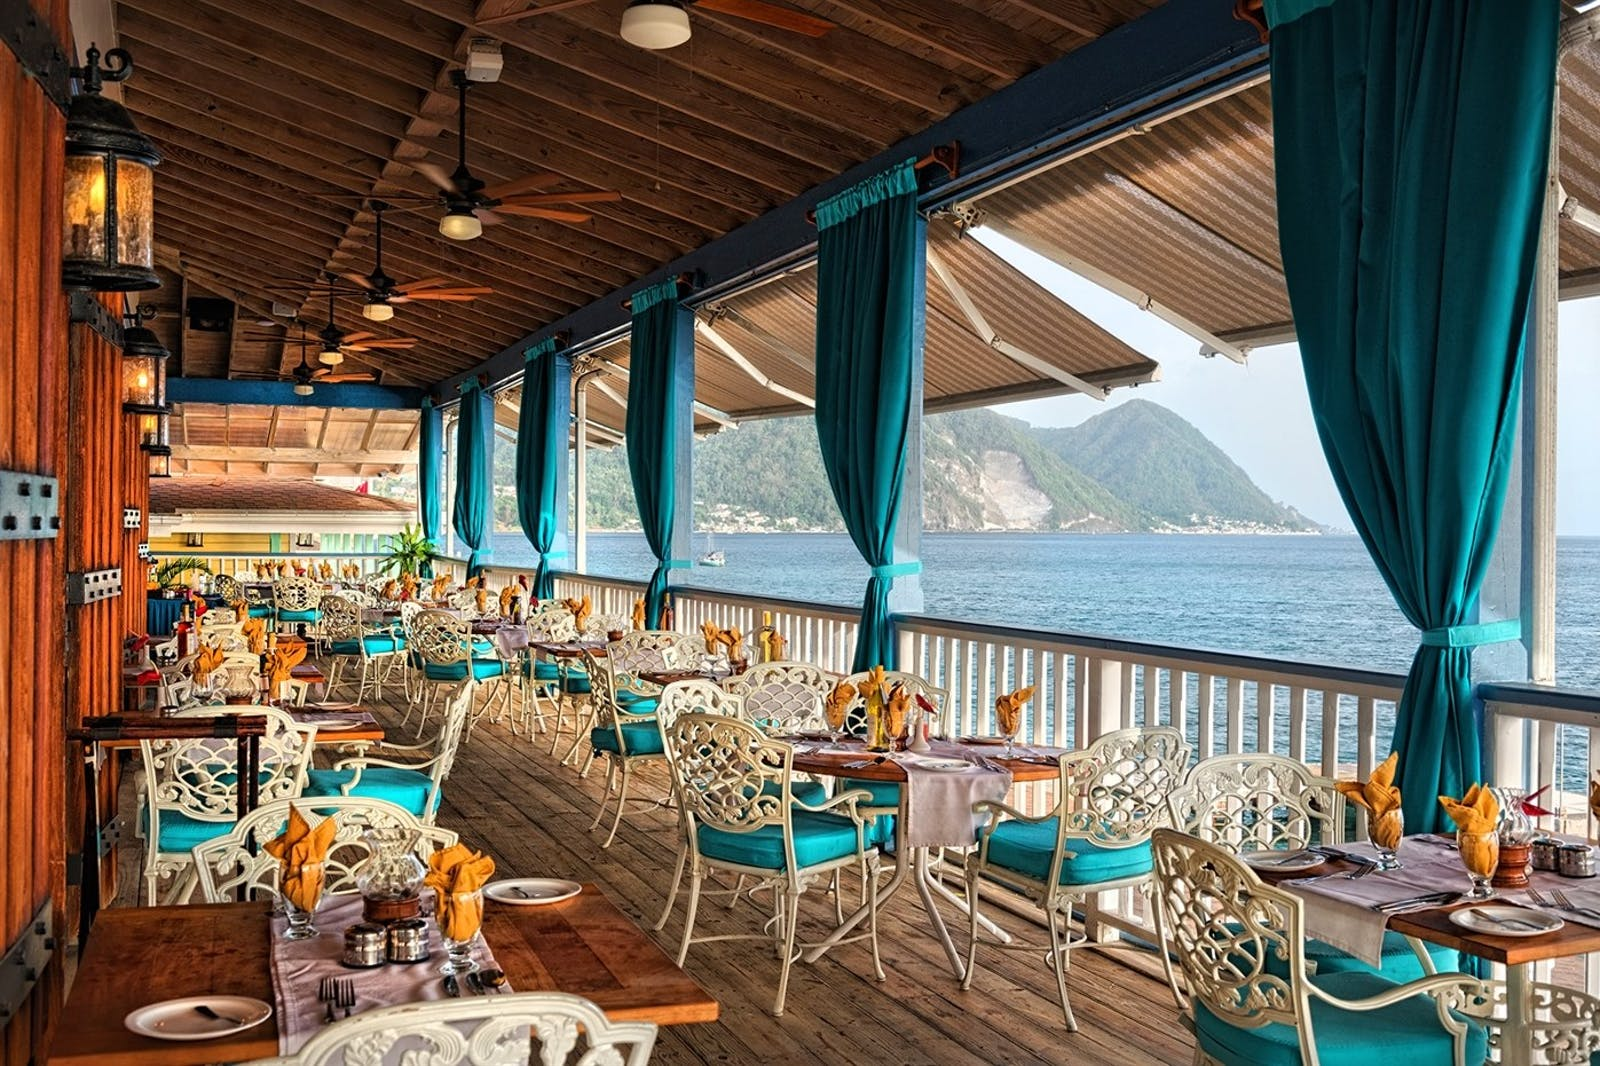 Palisades Restaurant at Fort Young, Dominica